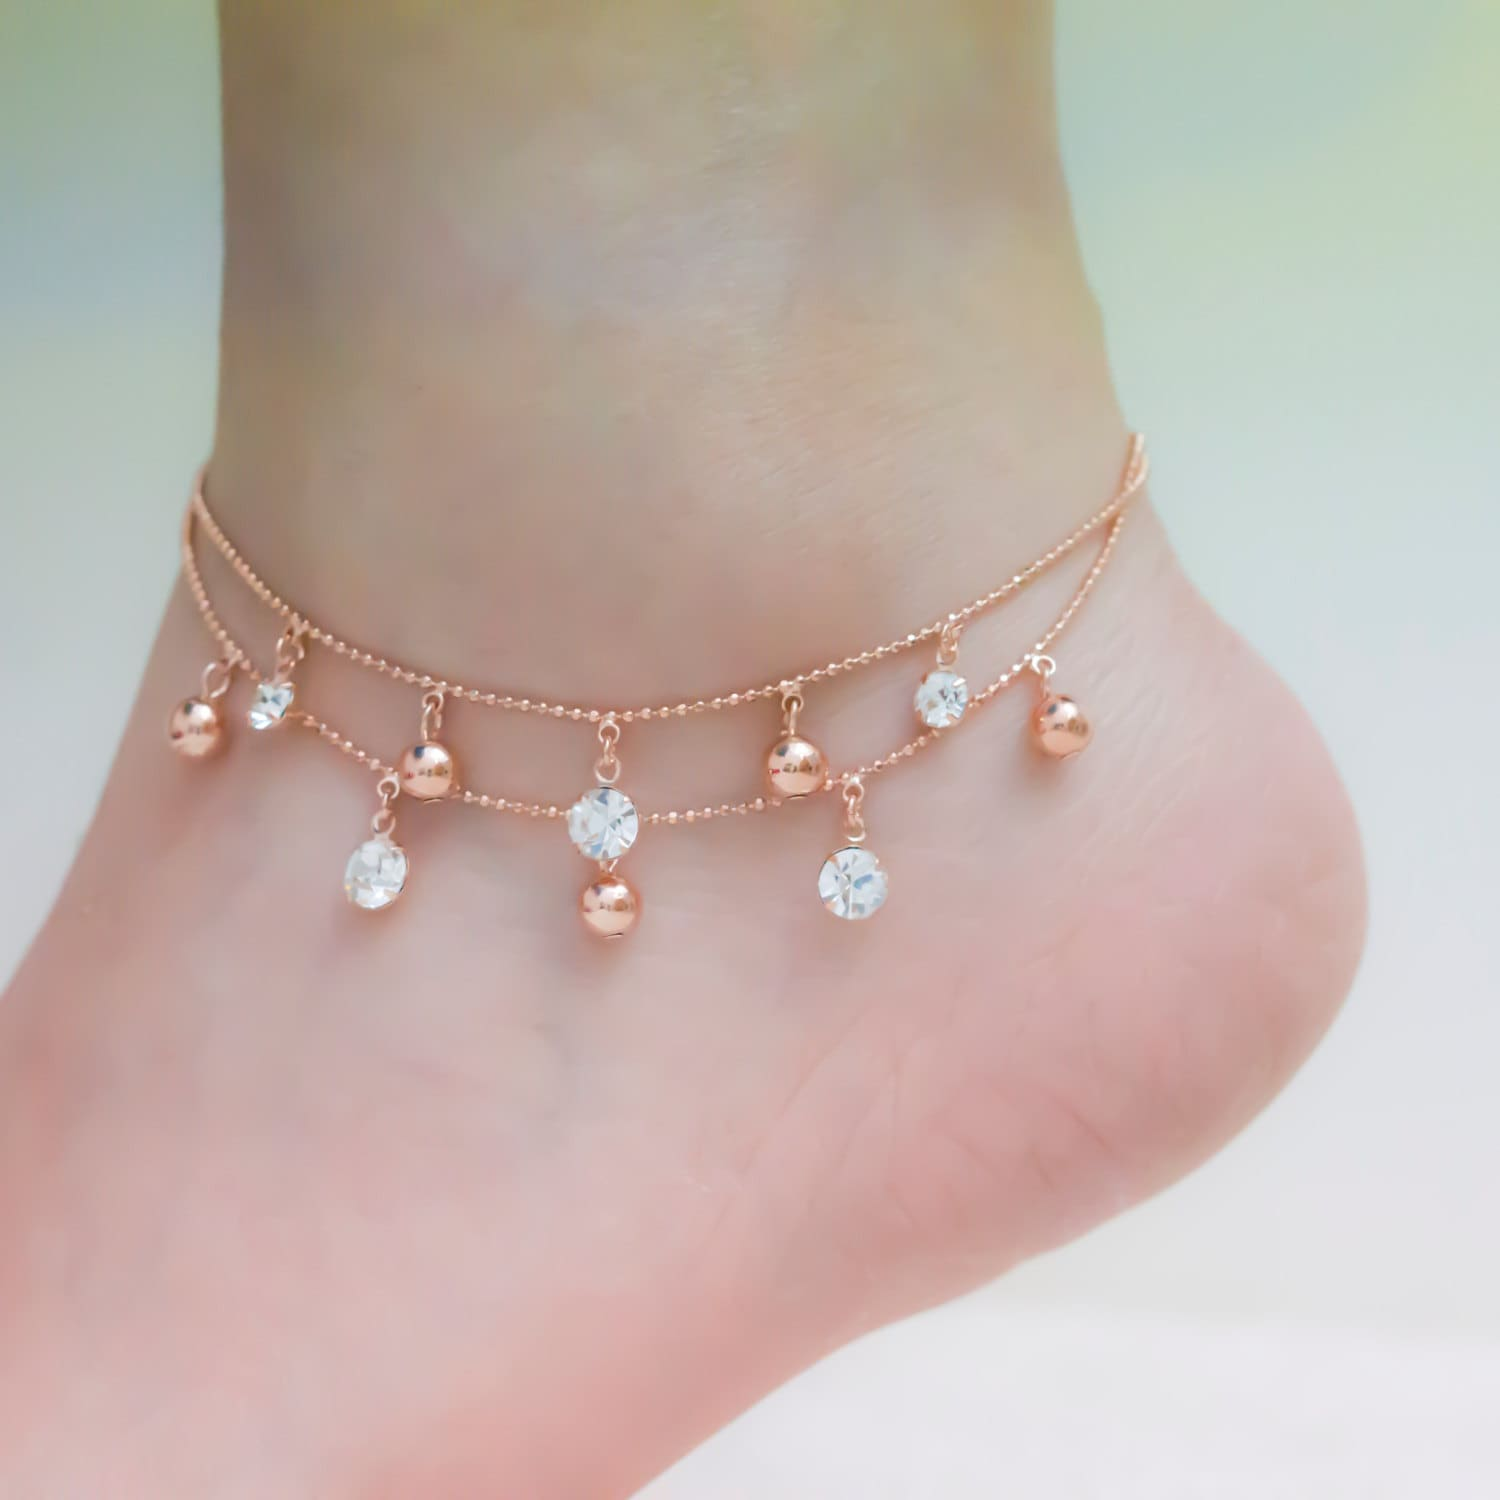 yellow grams ankle ebay charms itm anklet gold with heart shape bracelets bracelet